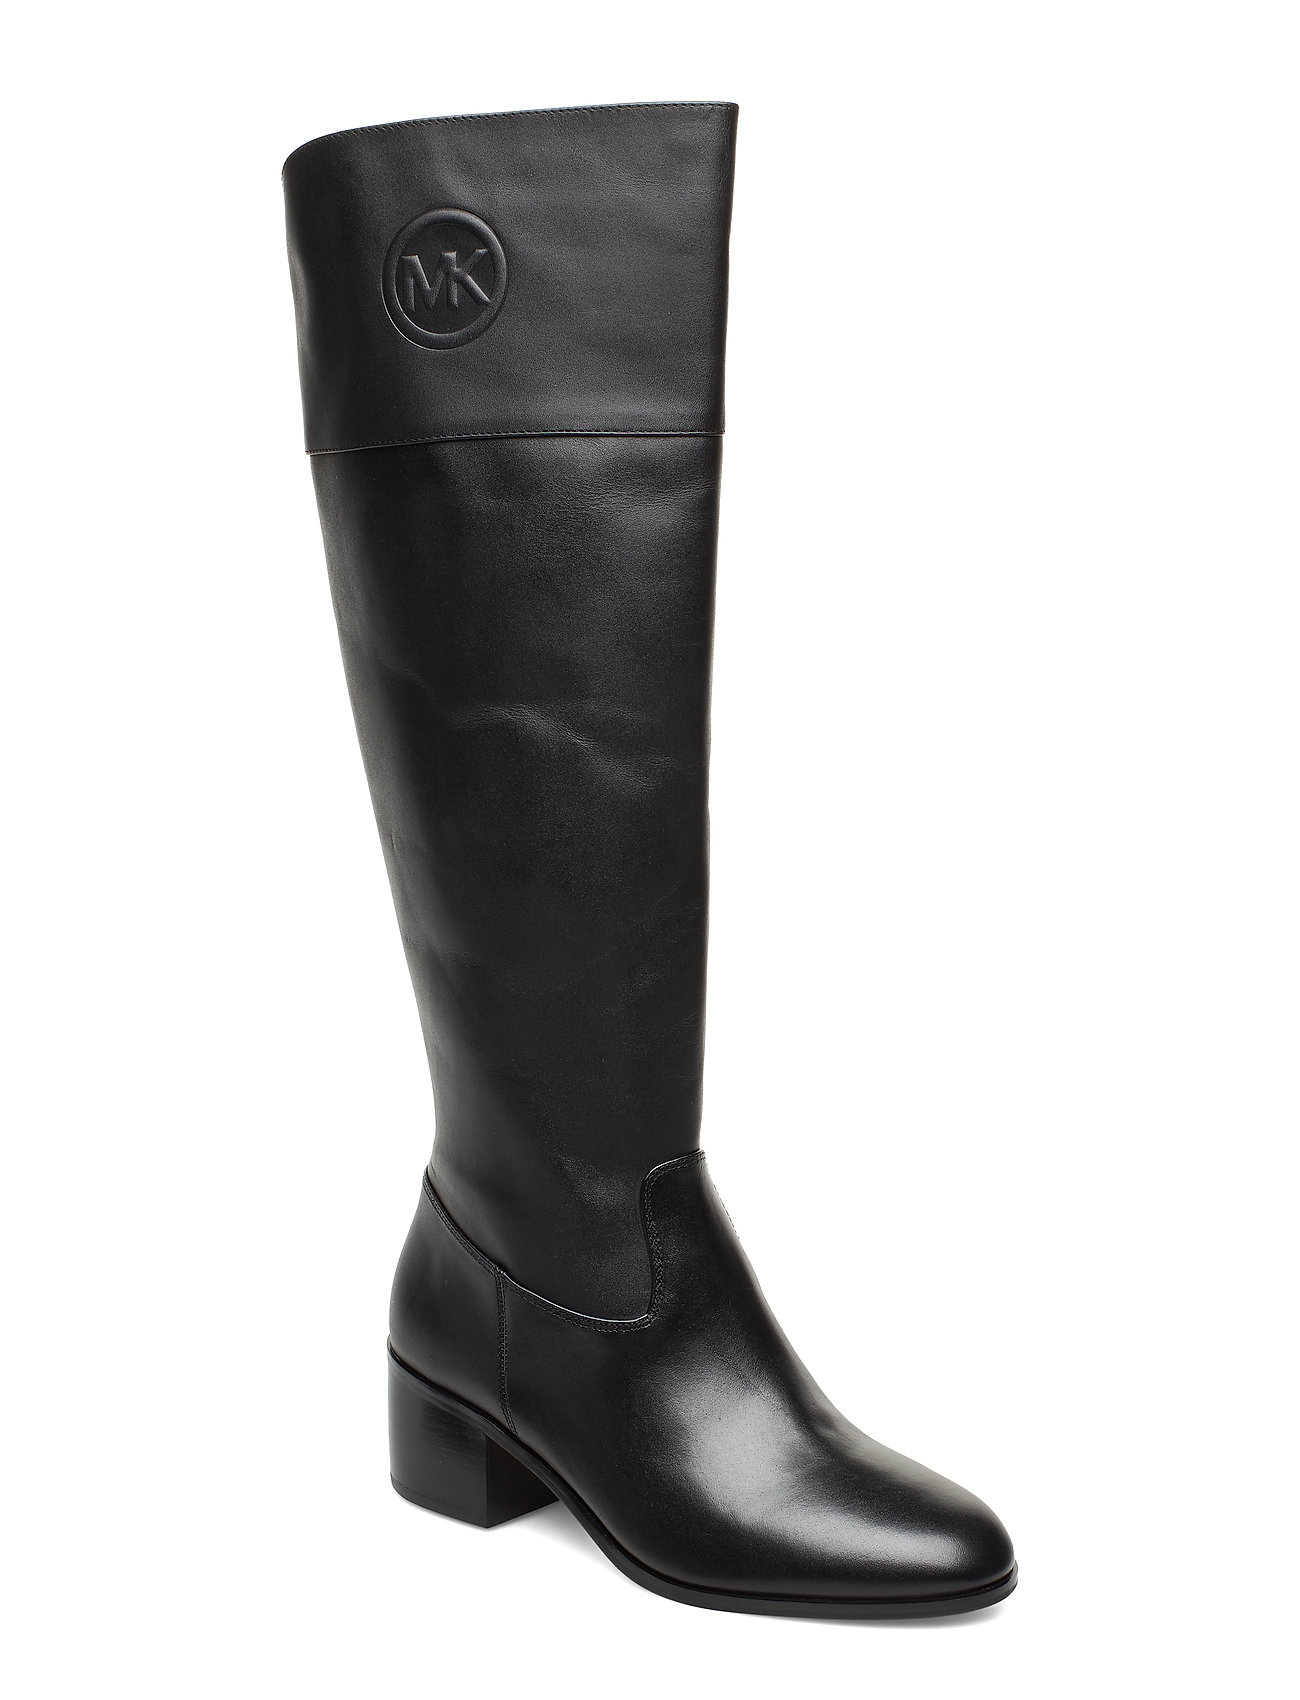 Michael Kors Shoes DYLYN BOOT - BLACK